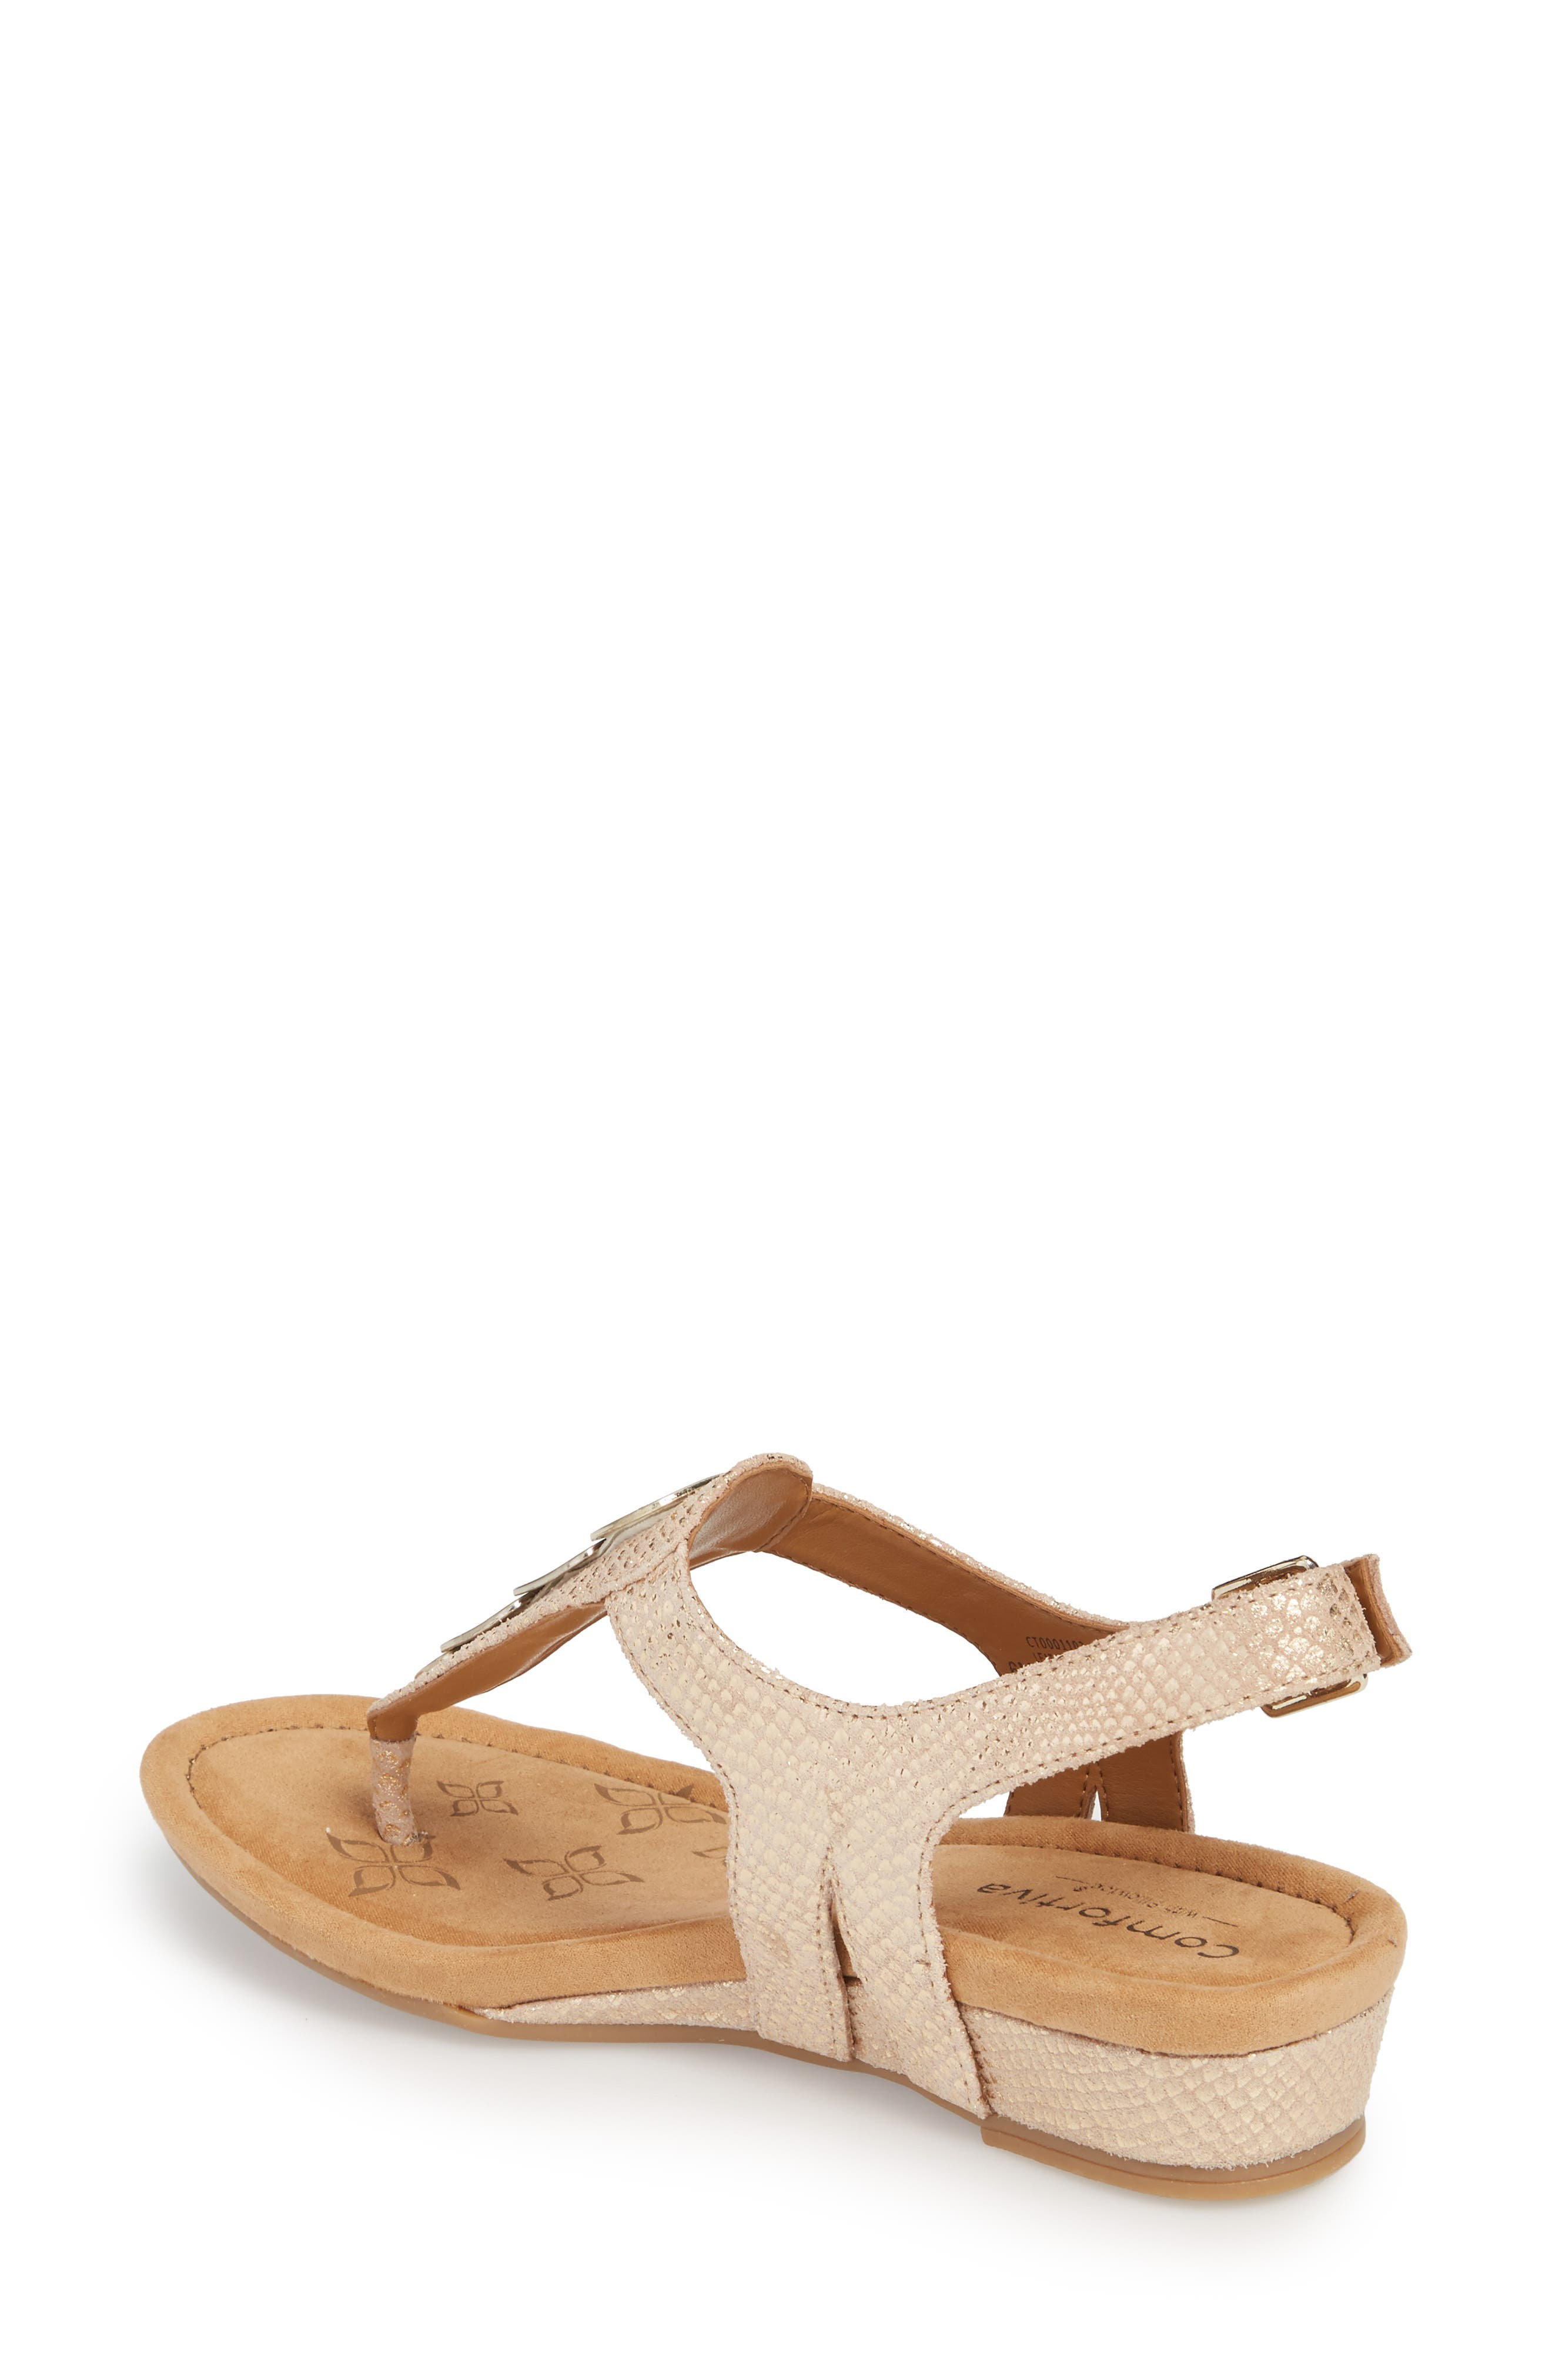 Summit Wedge Sandal,                             Alternate thumbnail 2, color,                             Gold Suede